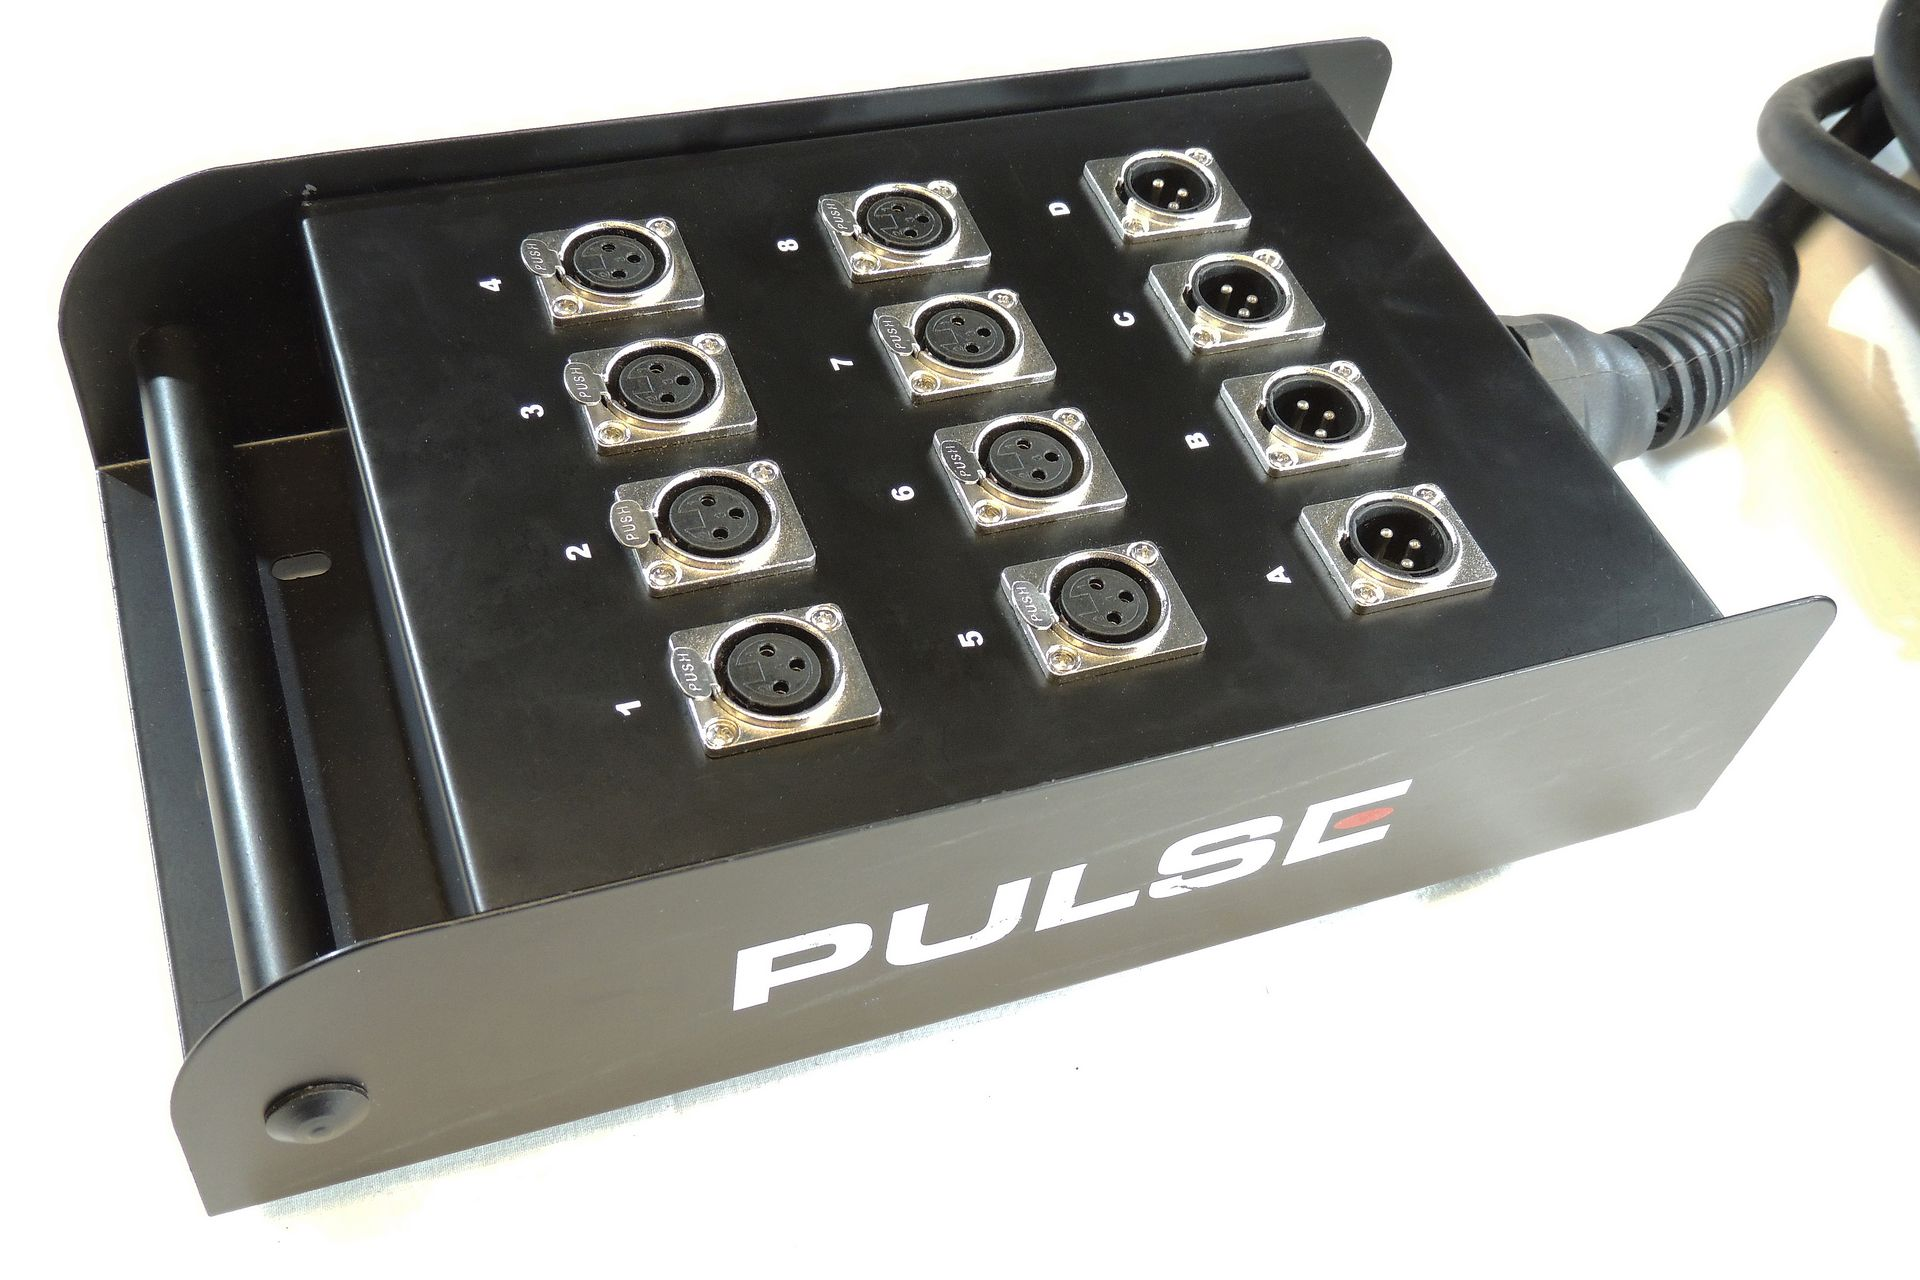 Pulse 8 x 4 14 meter multi-core for sale at Plasma Music